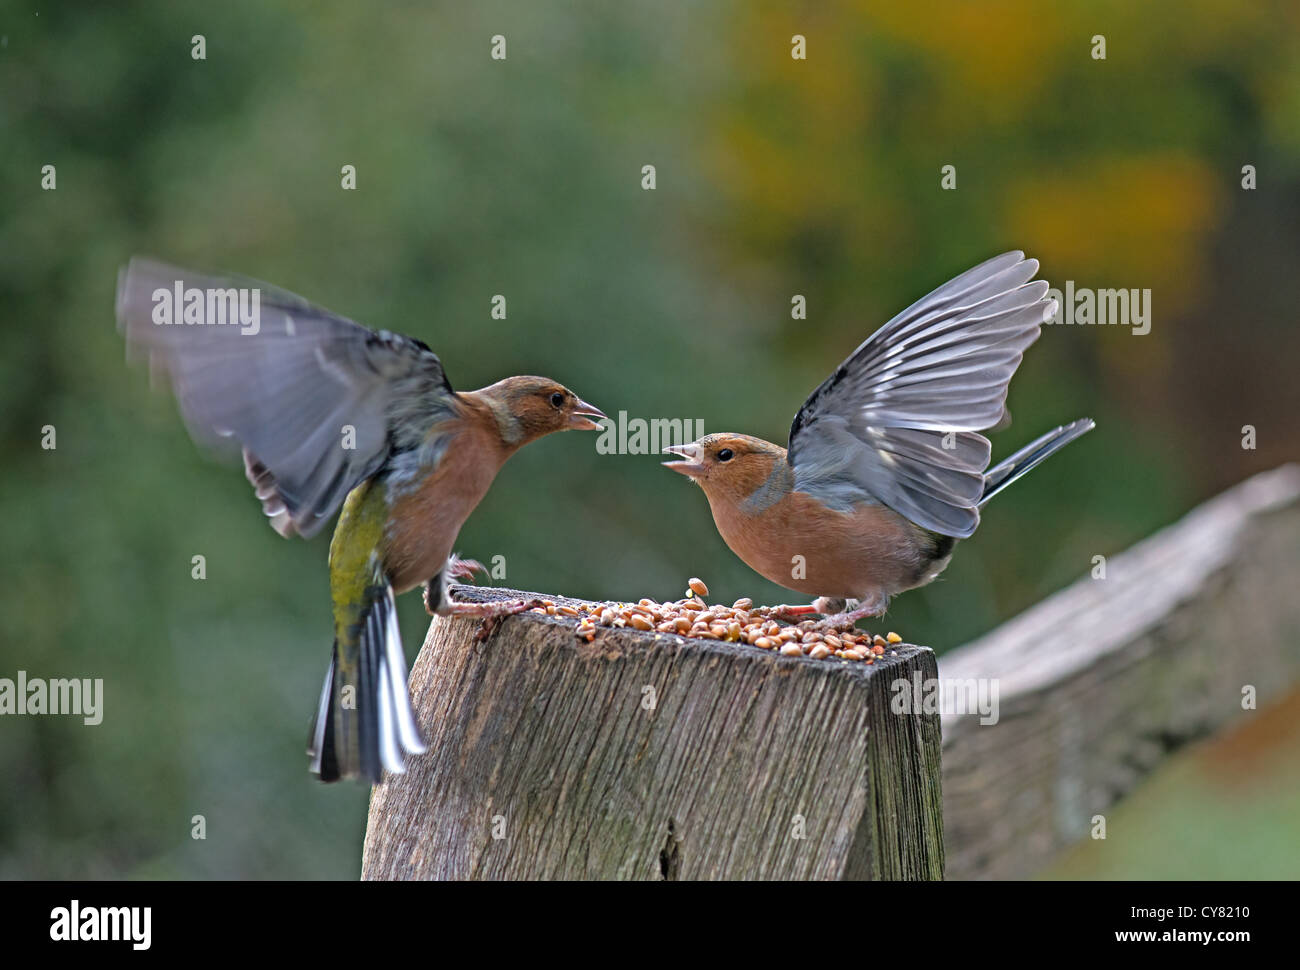 PAIR OF MALE CHAFFINCHES Fringilla coelebs FIGHTING OVER FOOD. UK - Stock Image